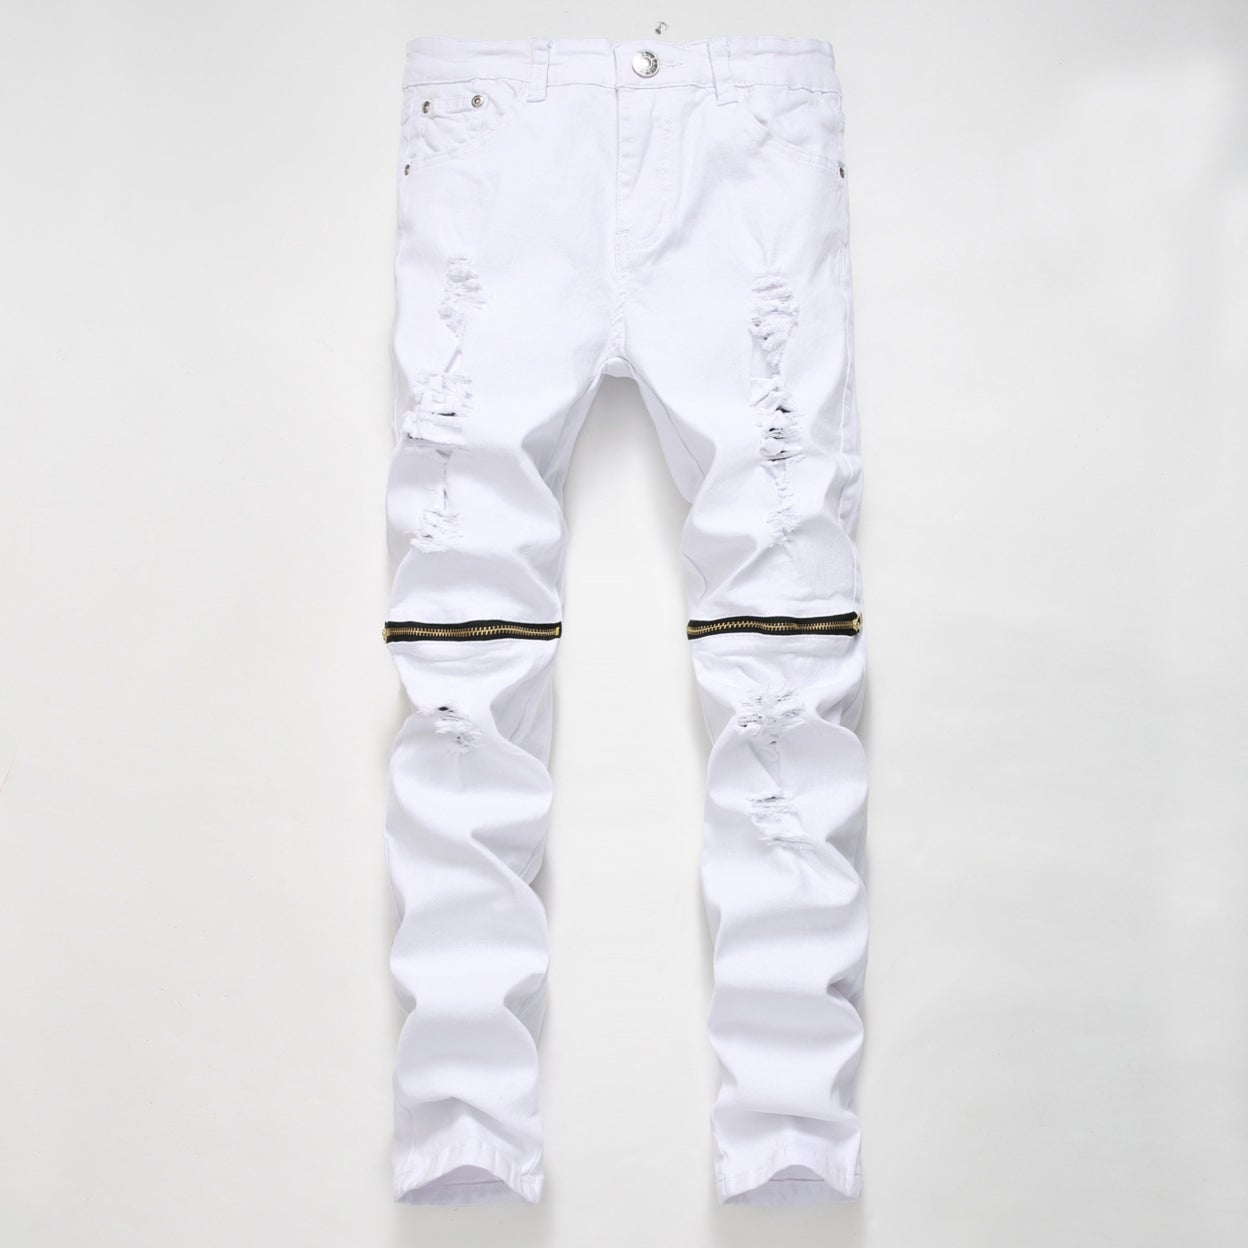 Pilusooou Mens Fashion Ripped Distressed Jeans With Broken Holes